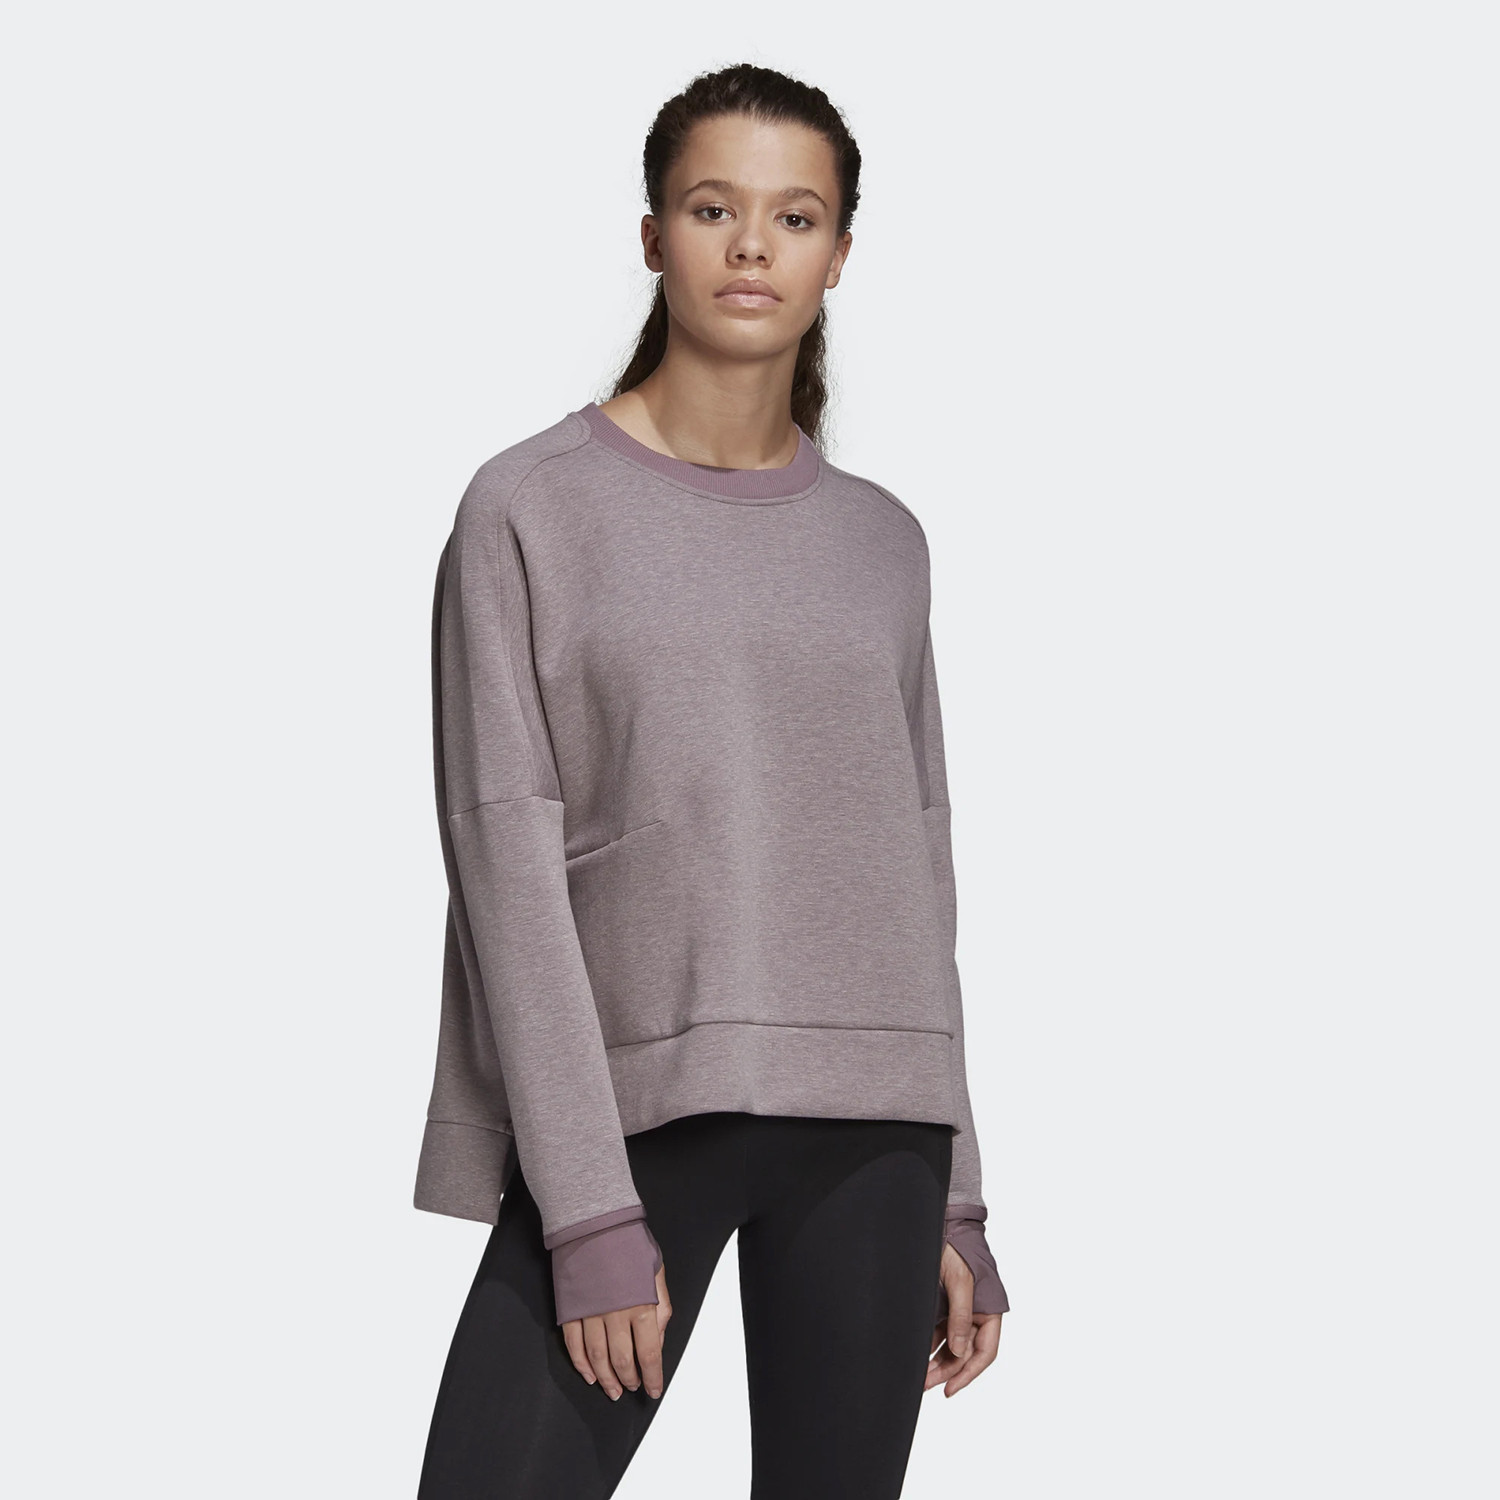 Adidas Must Haves Versatility Crew Sweatshirt (9000044991_43428)